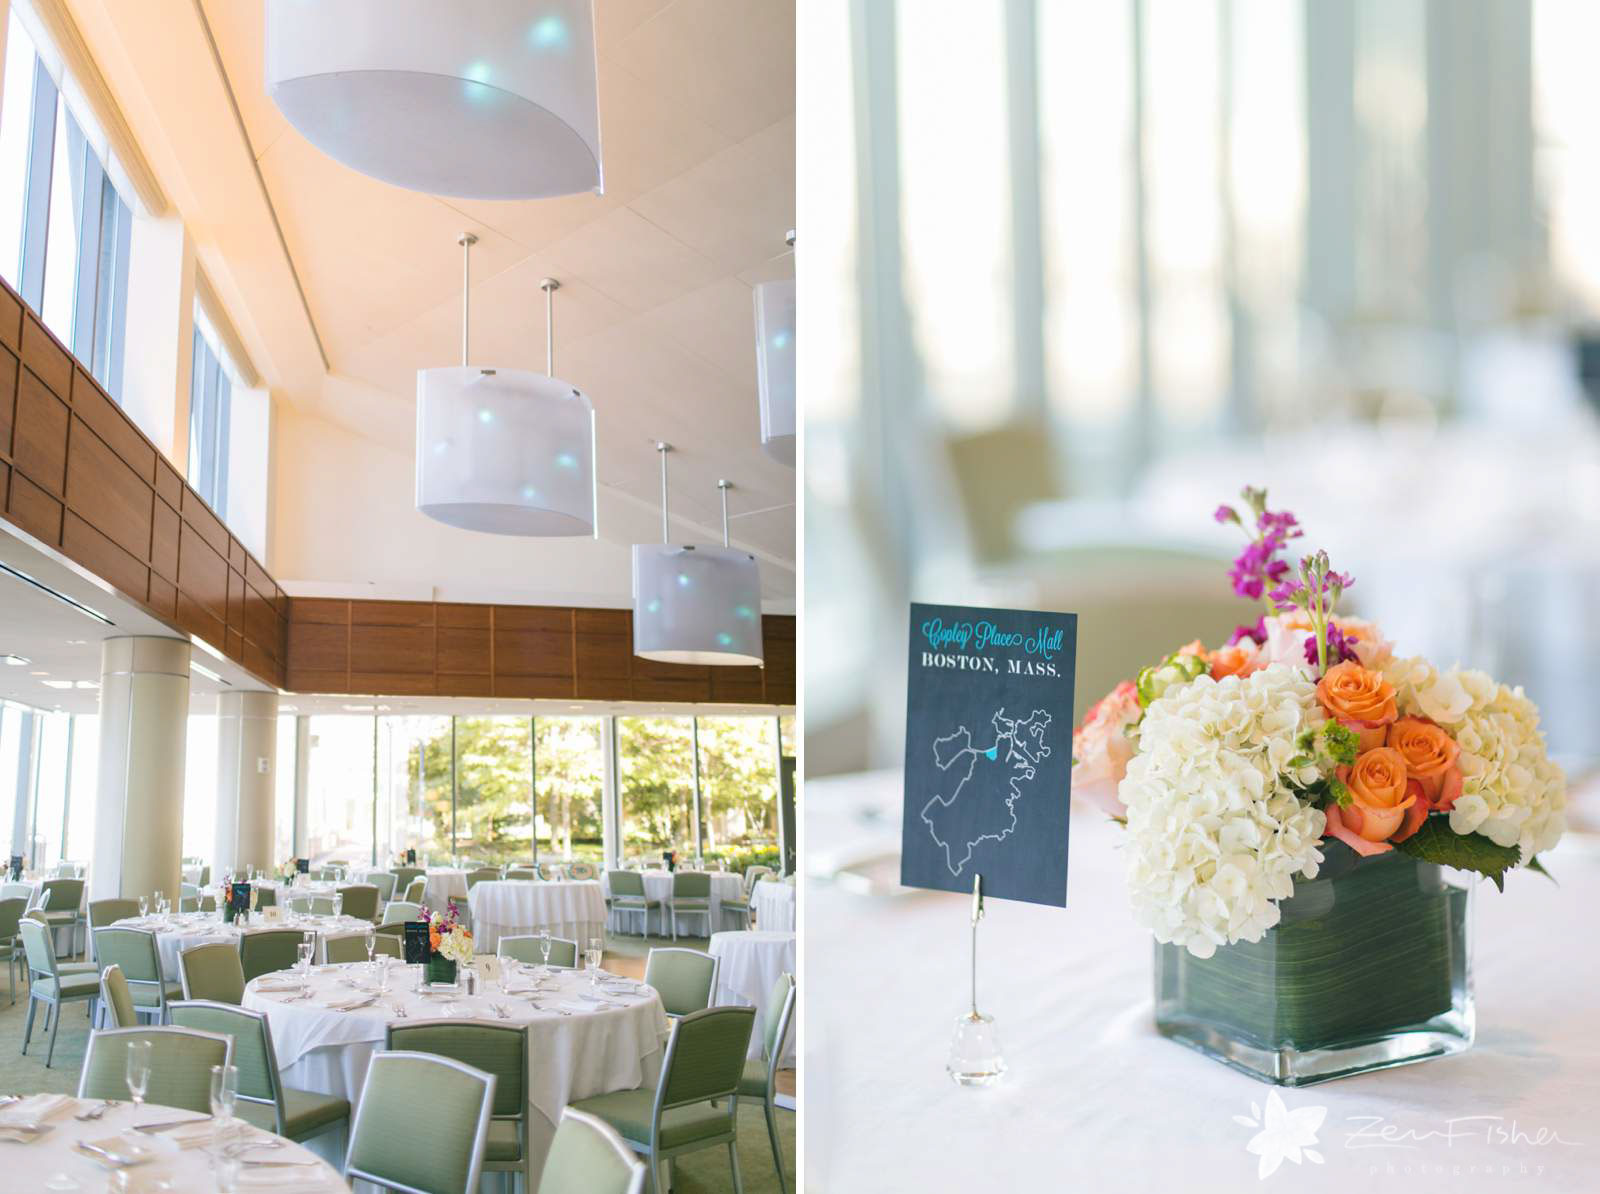 Modern reception hall at Boston Seaport Hotel, detail of centerpieces with white hydrangeas